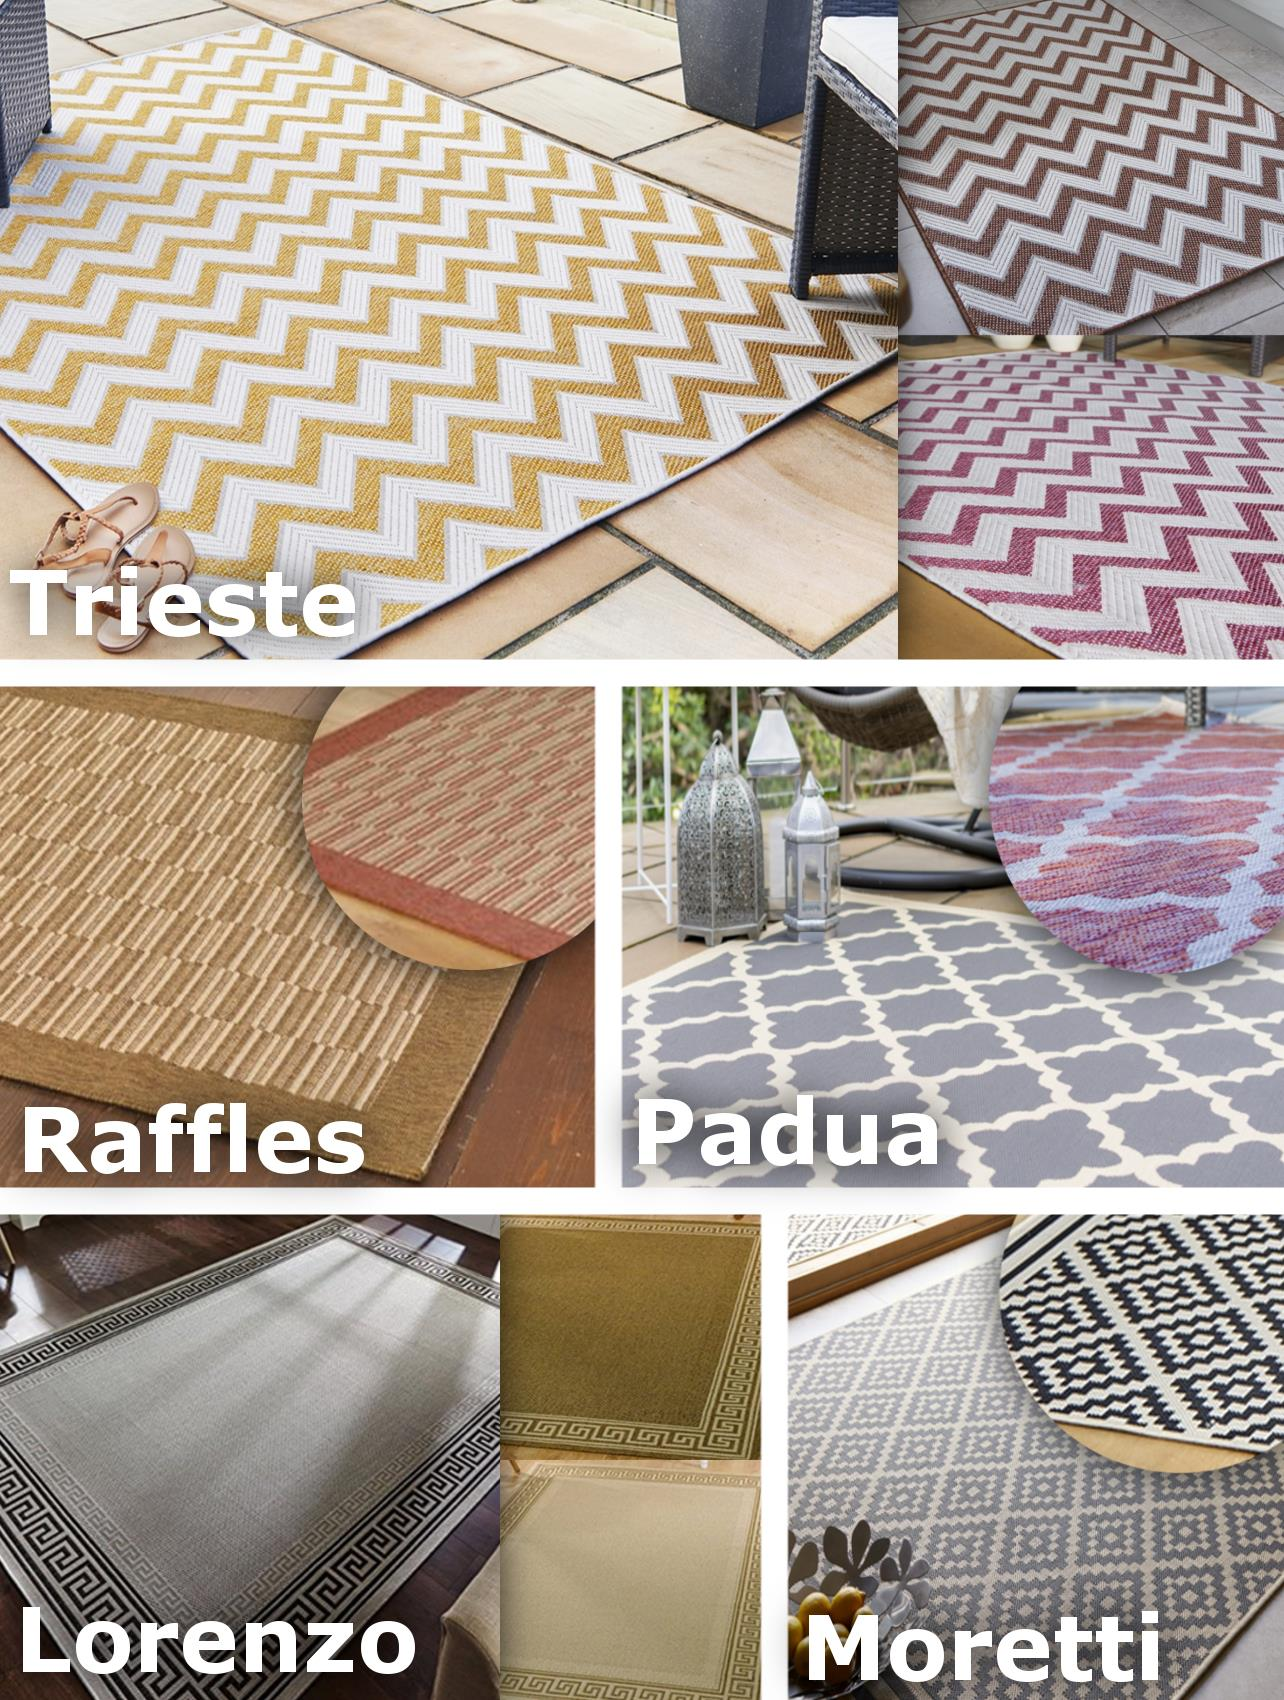 Details About Indoor Outdoor Rug Mat Runner Carpet Small Large Hard Wearing 5 Designs New